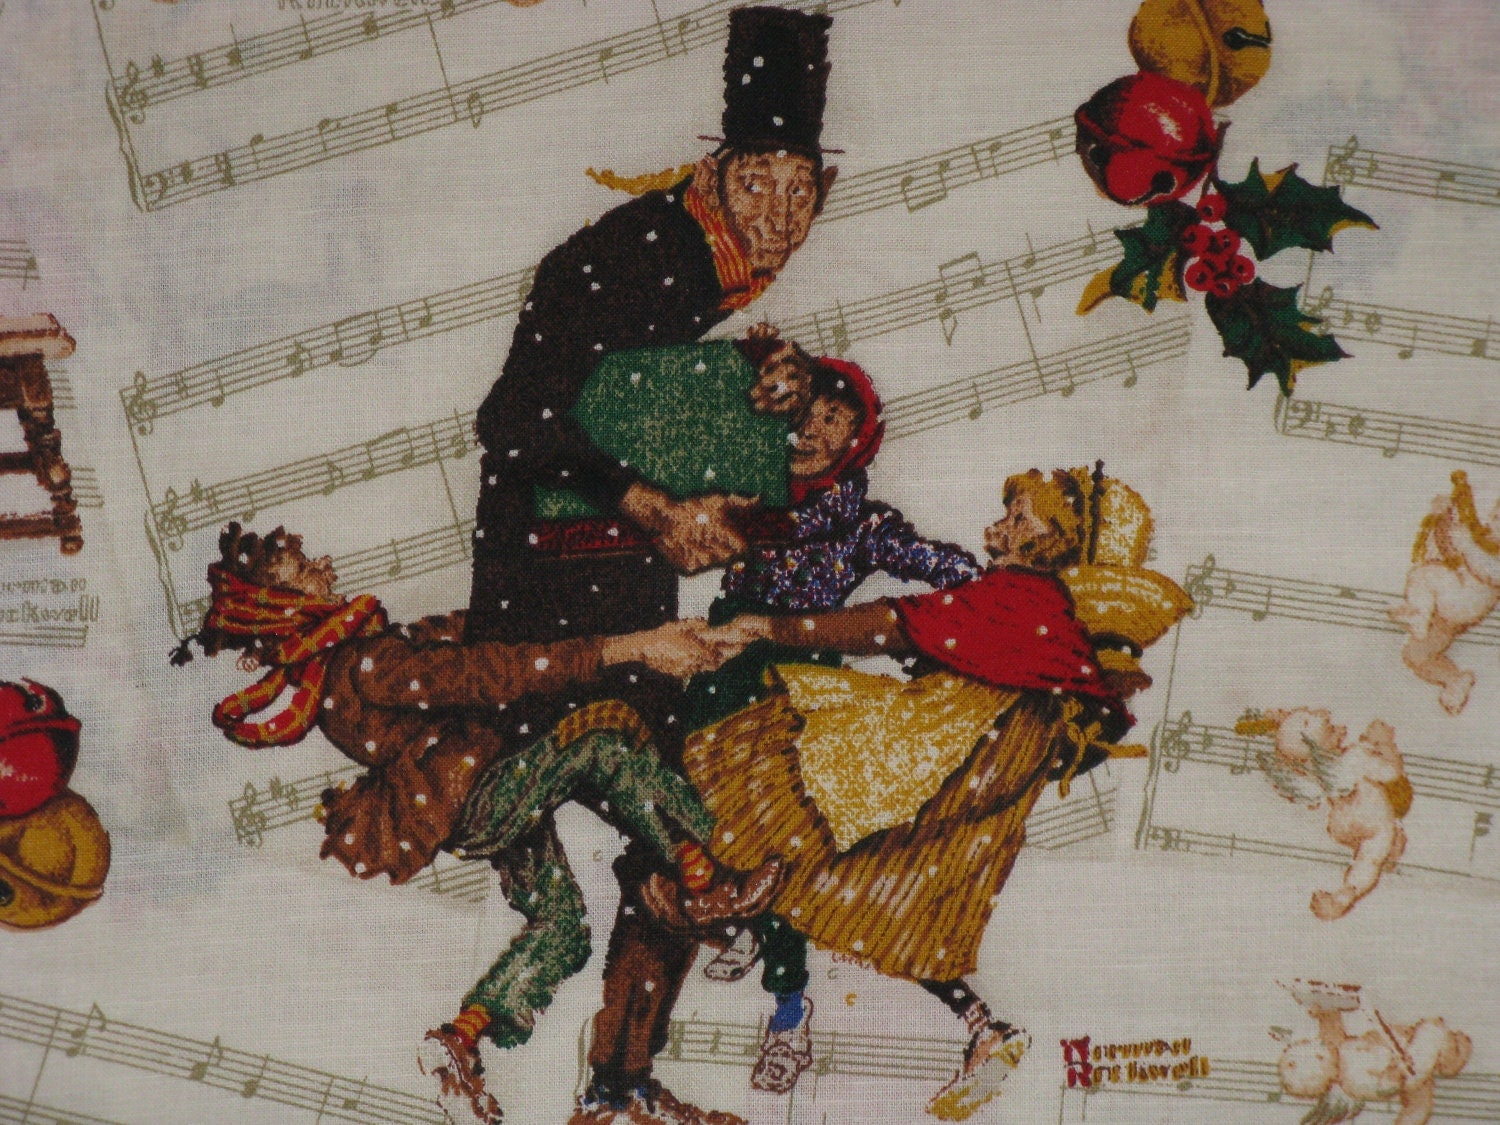 Norman Rockwell Christmas Prints - Best of Norman Rockwell Christmas ...